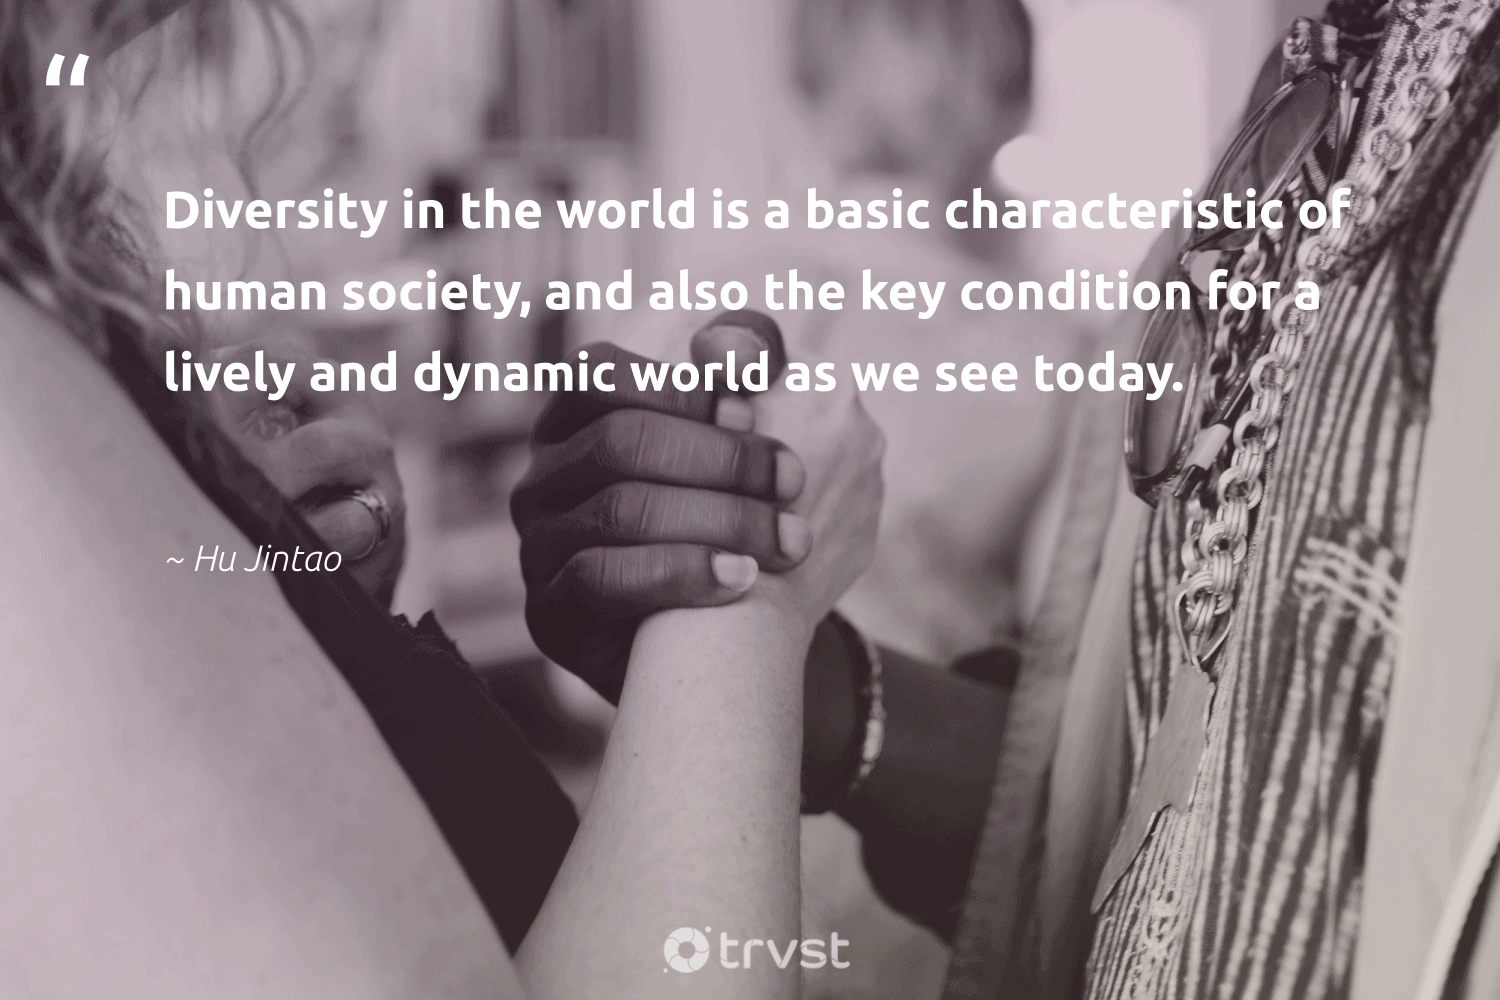 """Diversity in the world is a basic characteristic of human society, and also the key condition for a lively and dynamic world as we see today.""  - Hu Jintao #trvst #quotes #diversity #society #inclusion #representationmatters #giveback #bethechange #impact #discrimination #socialgood #weareallone"